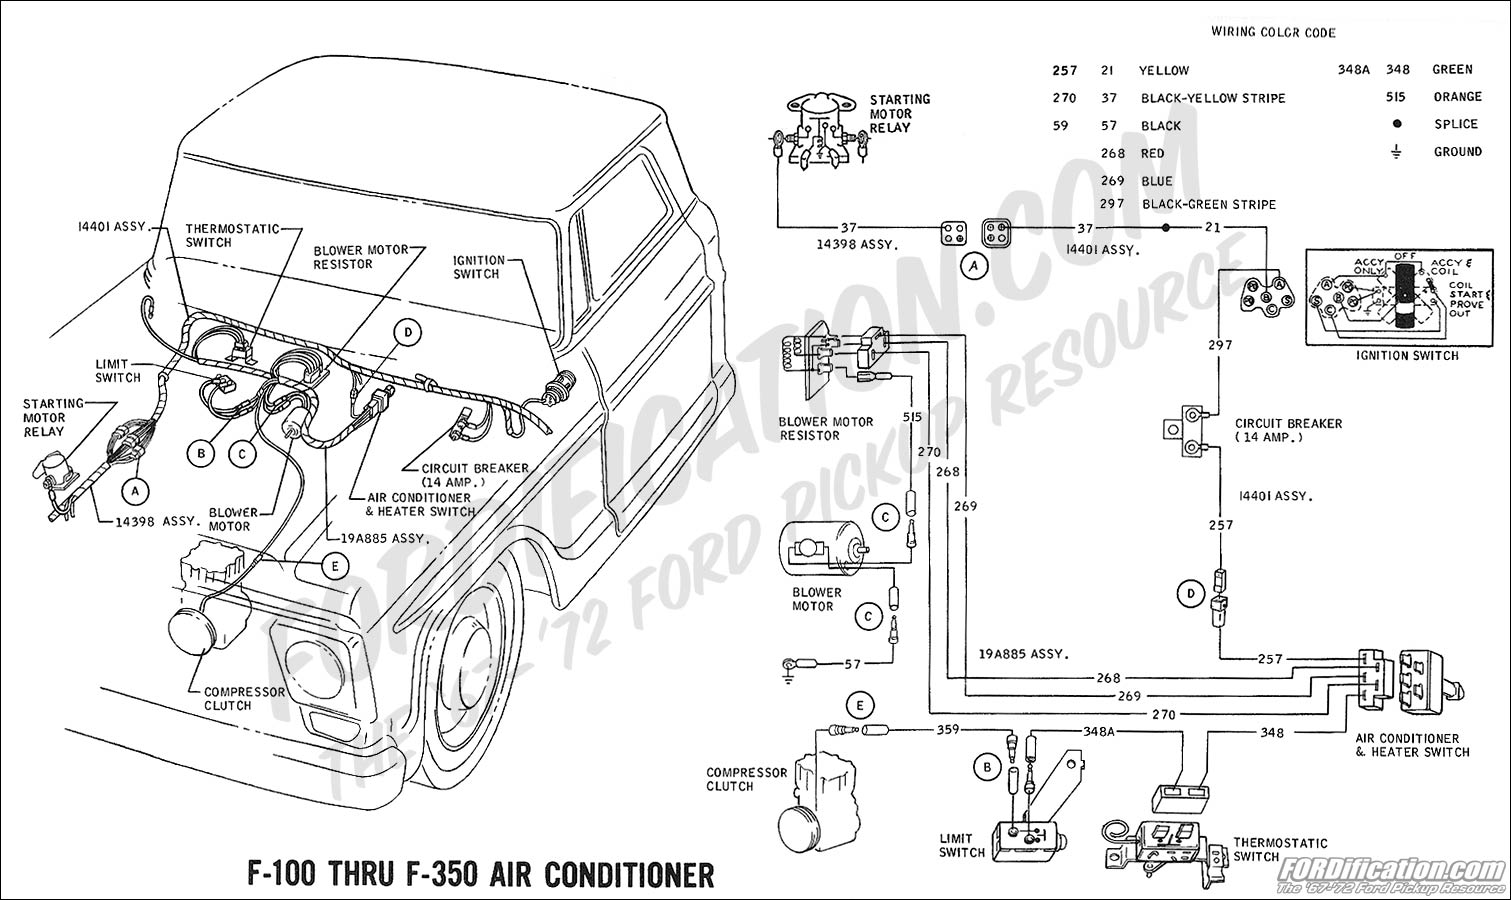 81 Chevy Truck Wiring Diagram. Chevy. Auto Wiring Diagram